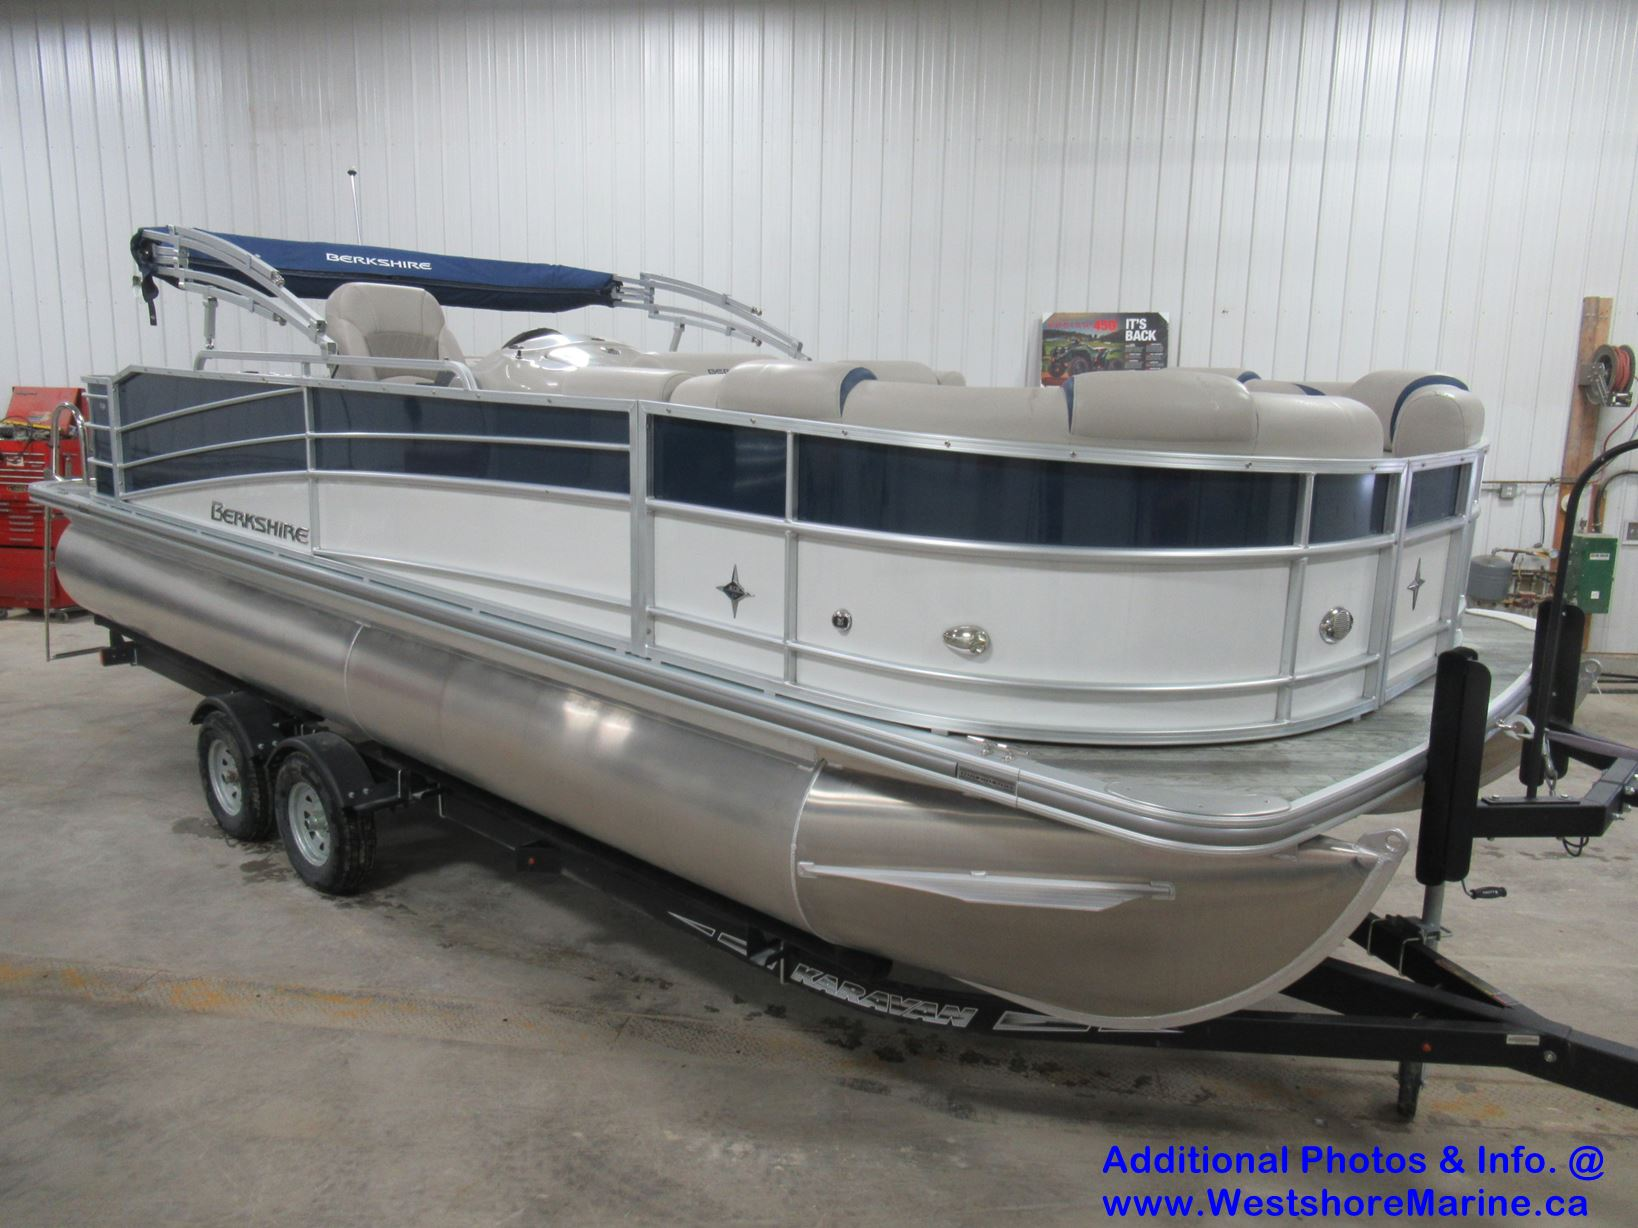 New 2018 BERKSHIRE 23' REAR FISH AND CRUISE (LOADED)